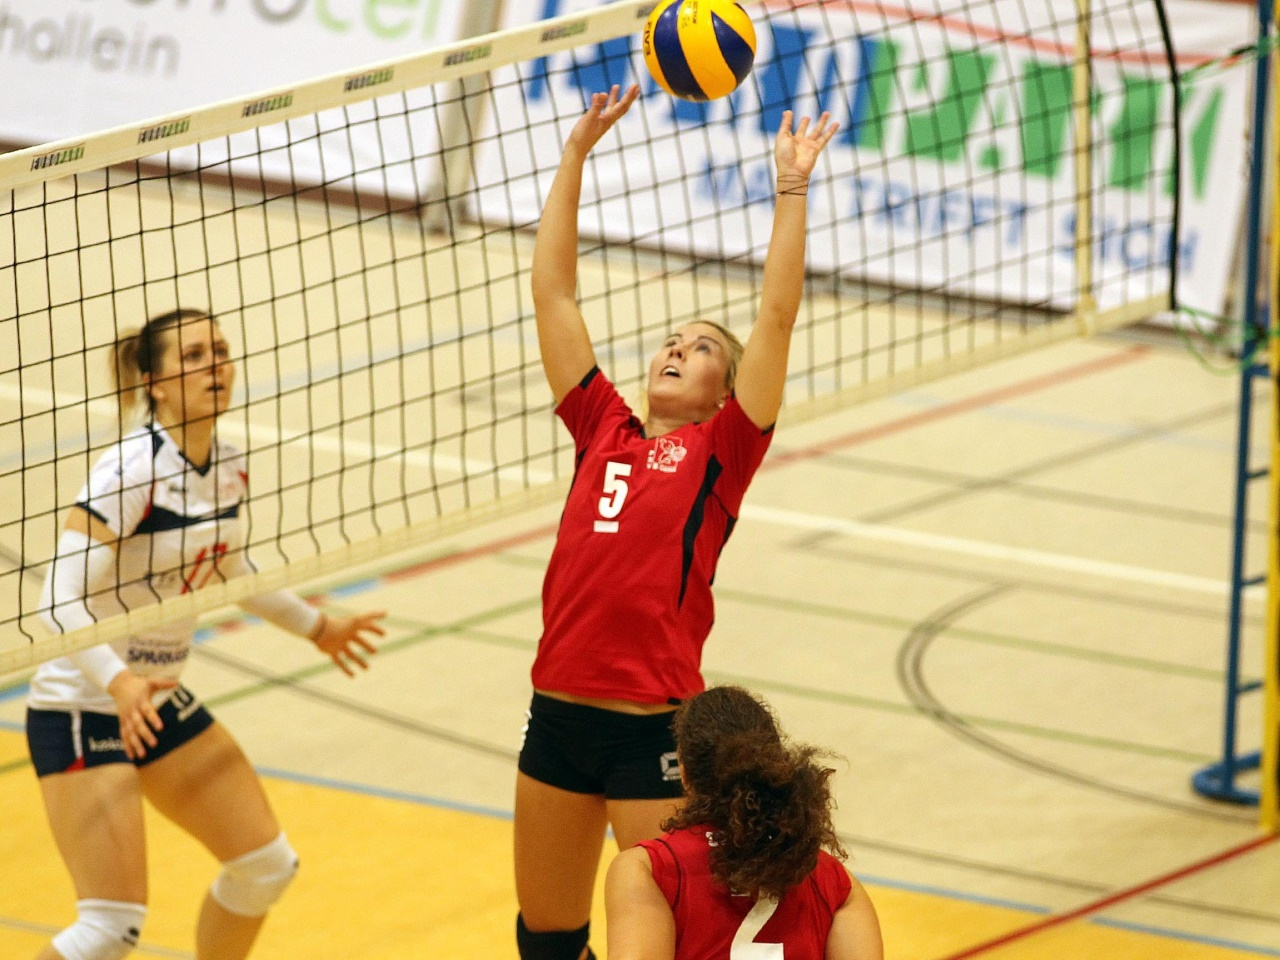 Volleyball: Sensation nach Analyse im Bus